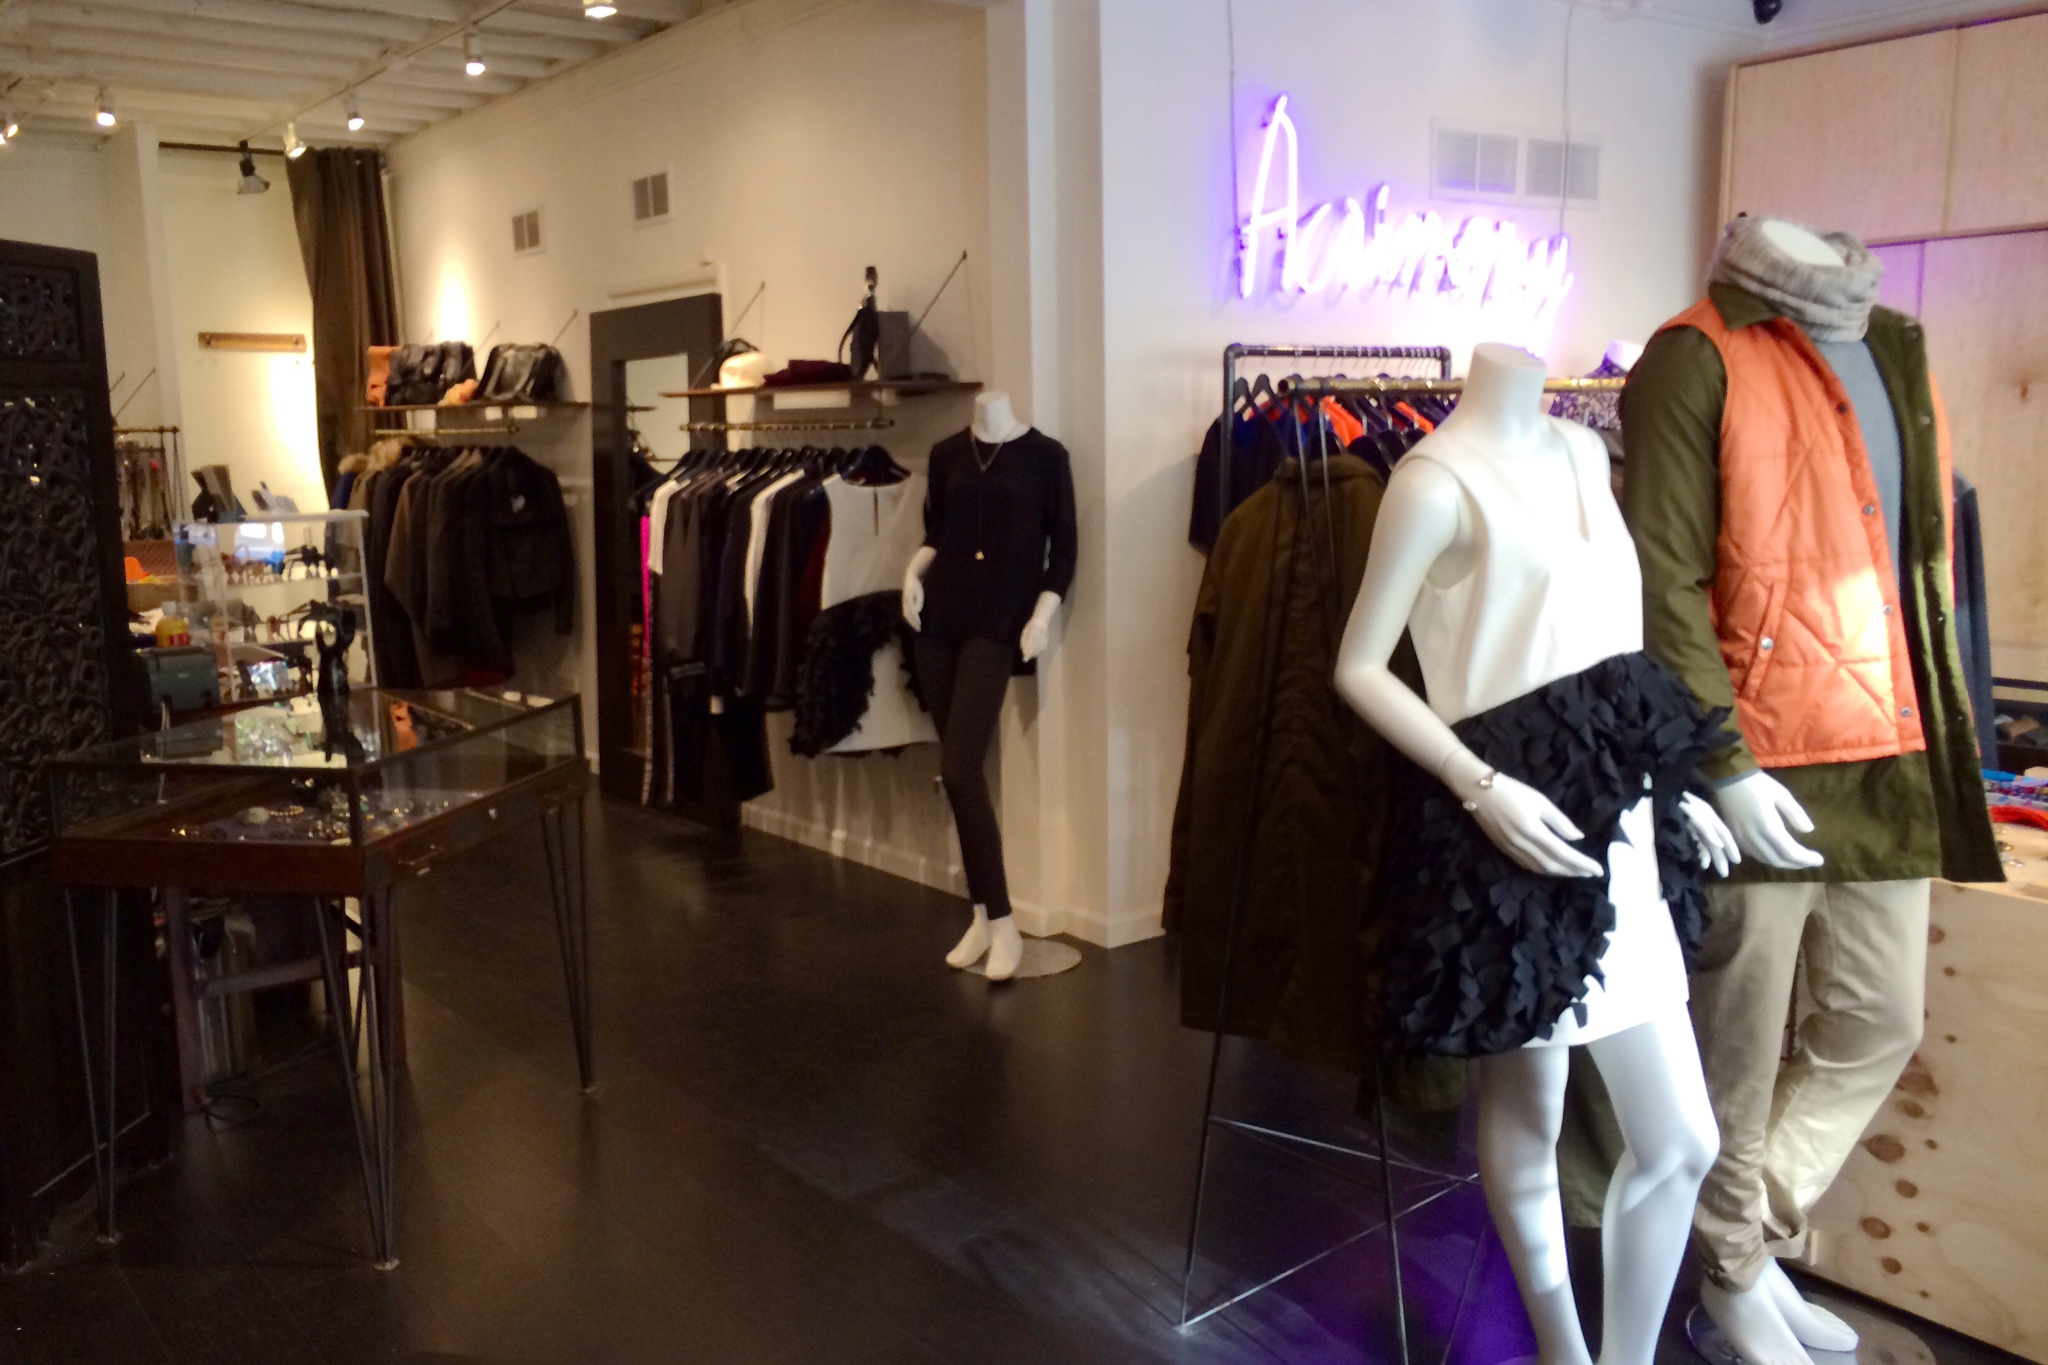 Apr 07, · The Nine Best Women's Clothing Boutiques In SF by Jay Barmann in Arts & Entertainment on Apr 7, pm In the past SFist has highlighted cool local fashion labels, vintage stores, and the best places to buy a men's suit.